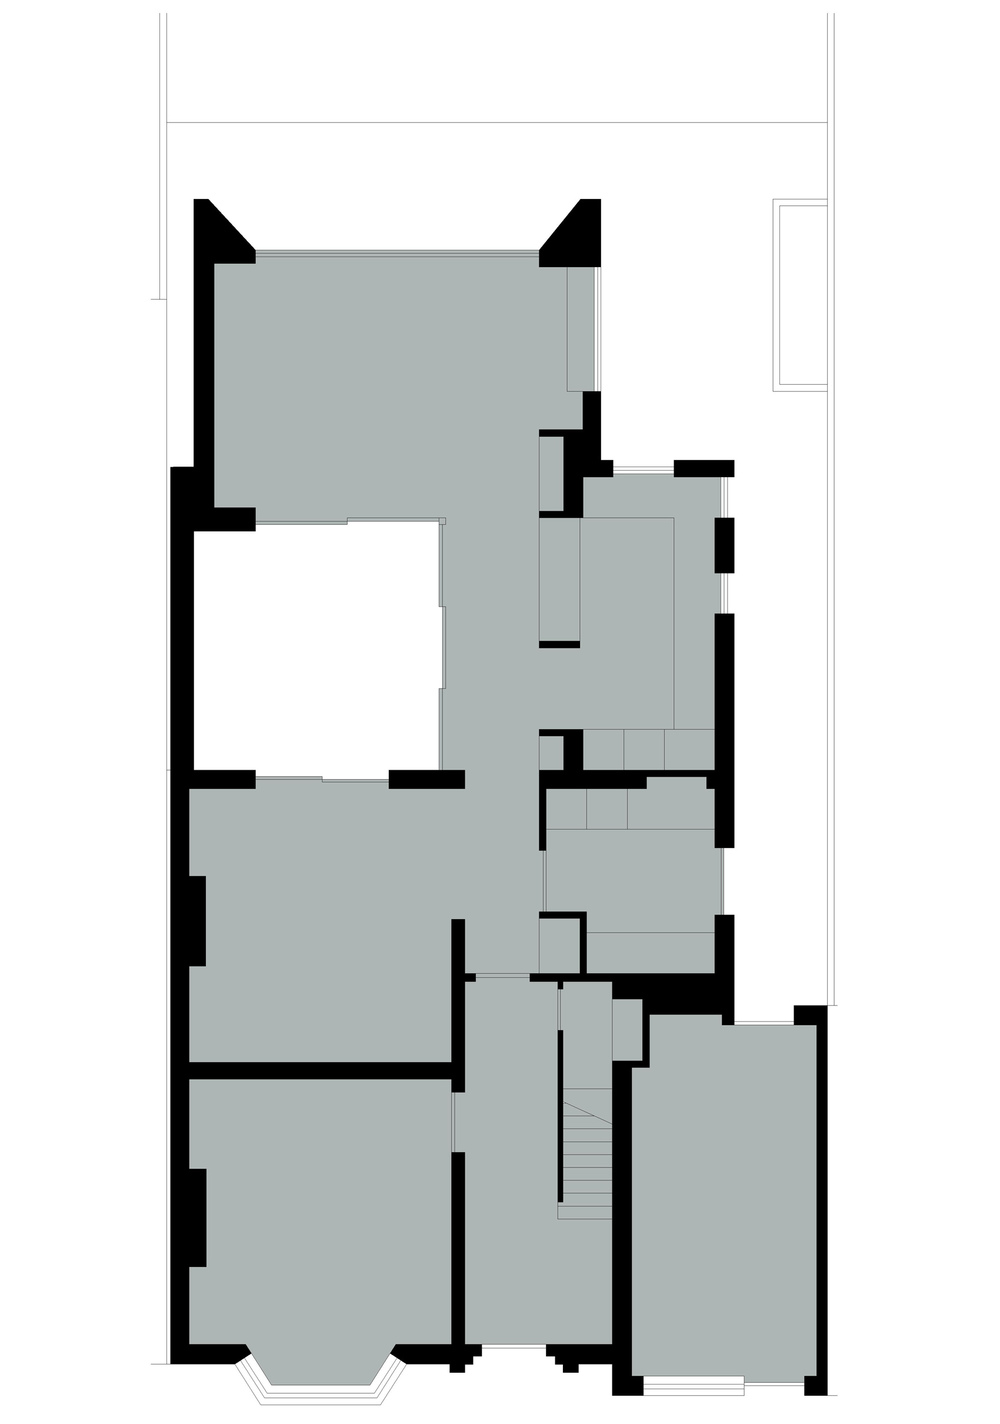 D0513 - 66 THE STILES ROAD - FLOOR PLAN.jpg